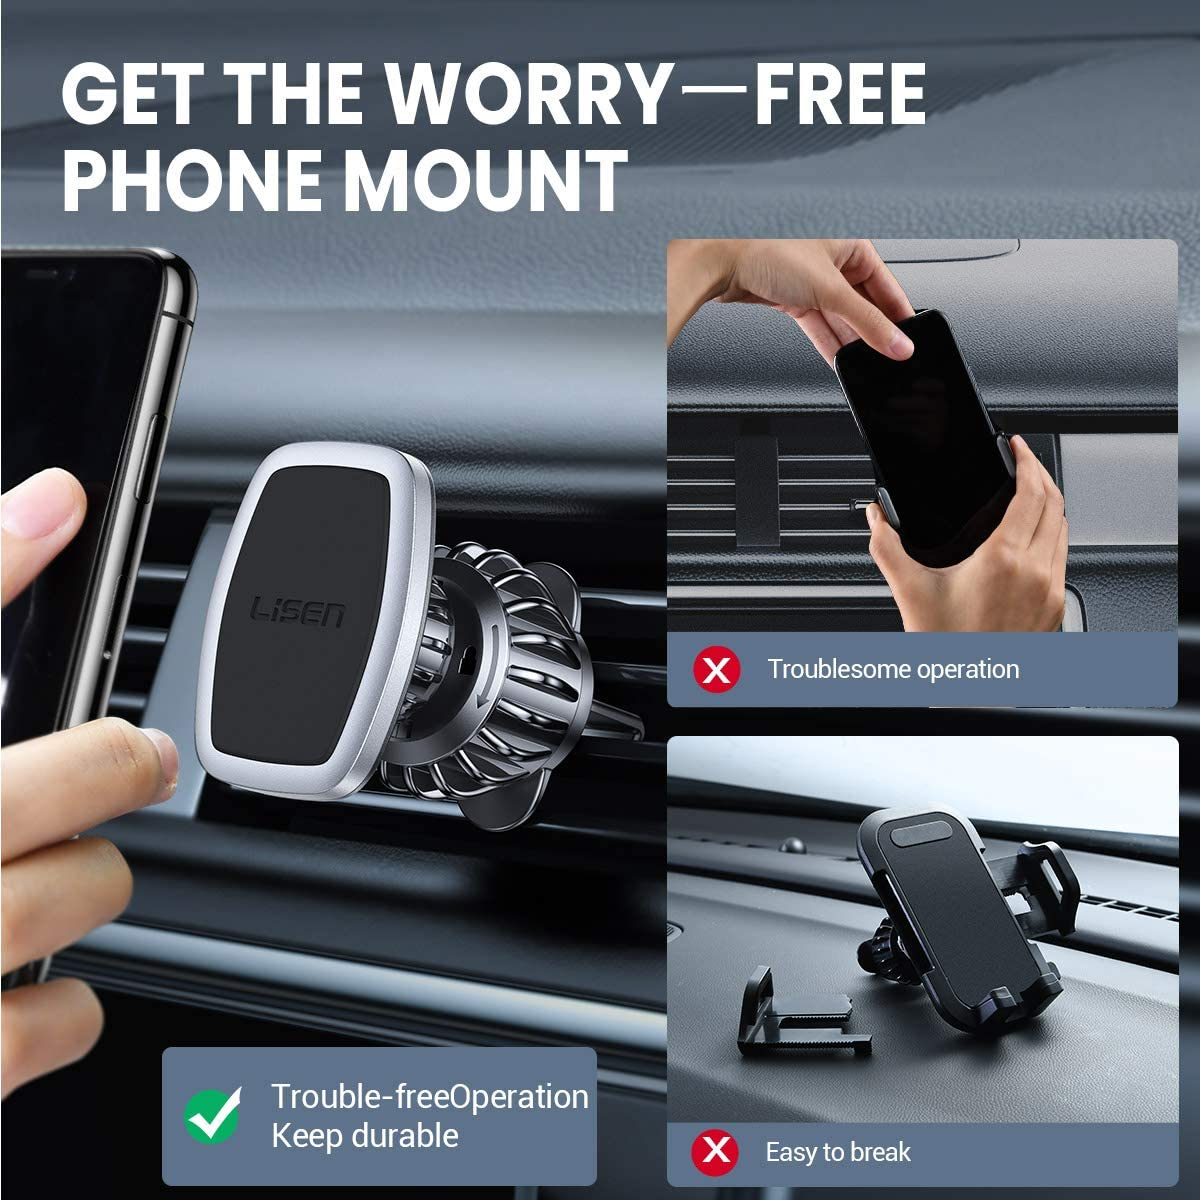 Upgraded Clip 6 Strong Magnets Magnetic Phone Mount Case Friendly Phone Car Holder Car Mount Compatible with All Smartphone and Tablet-Silver Car Phone Mount LISEN Phone Holder Car,